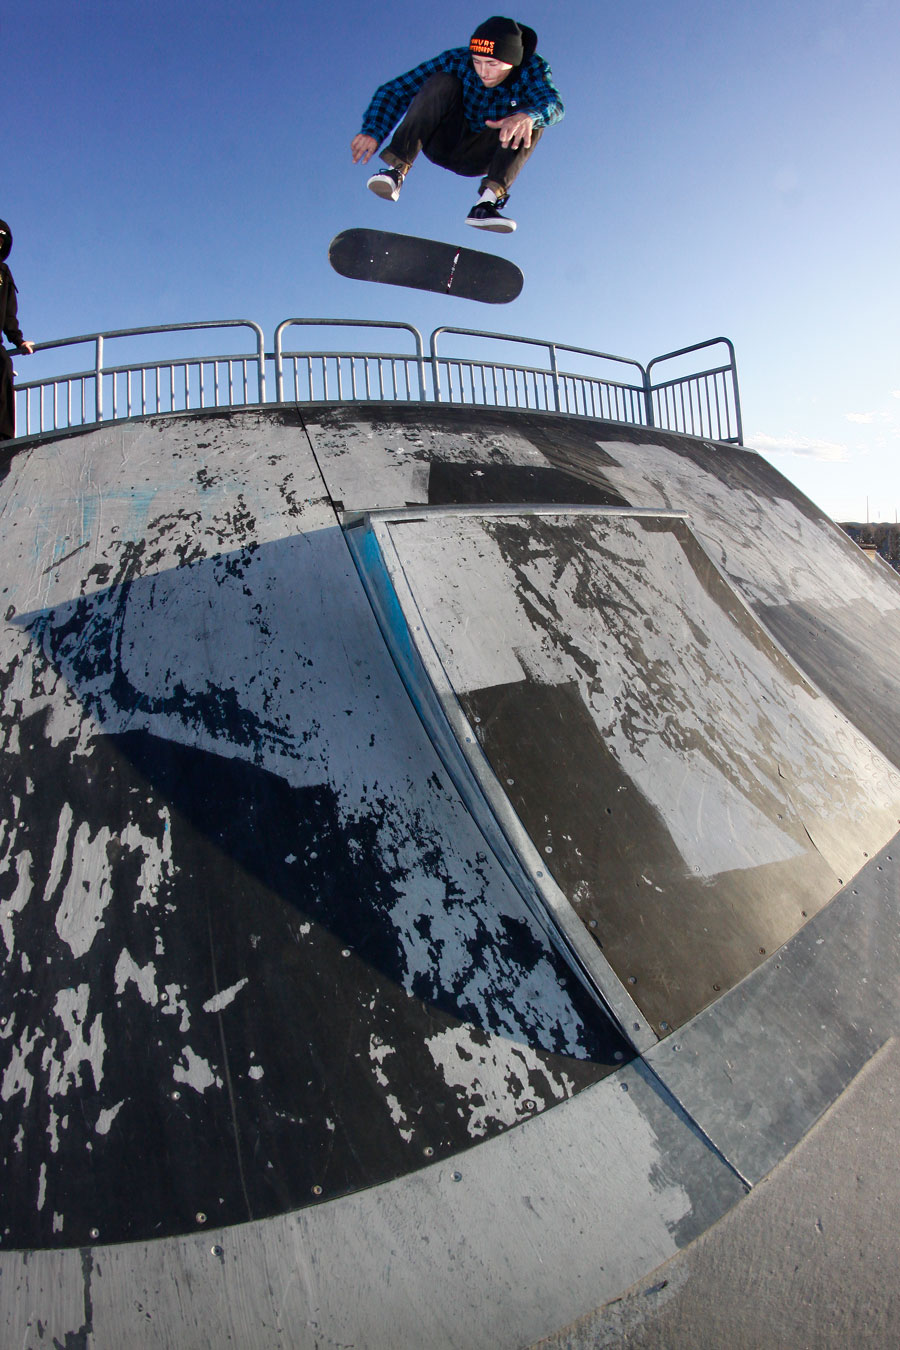 DePaul Madigan kickflip at Panther Vallley park Photo Volland